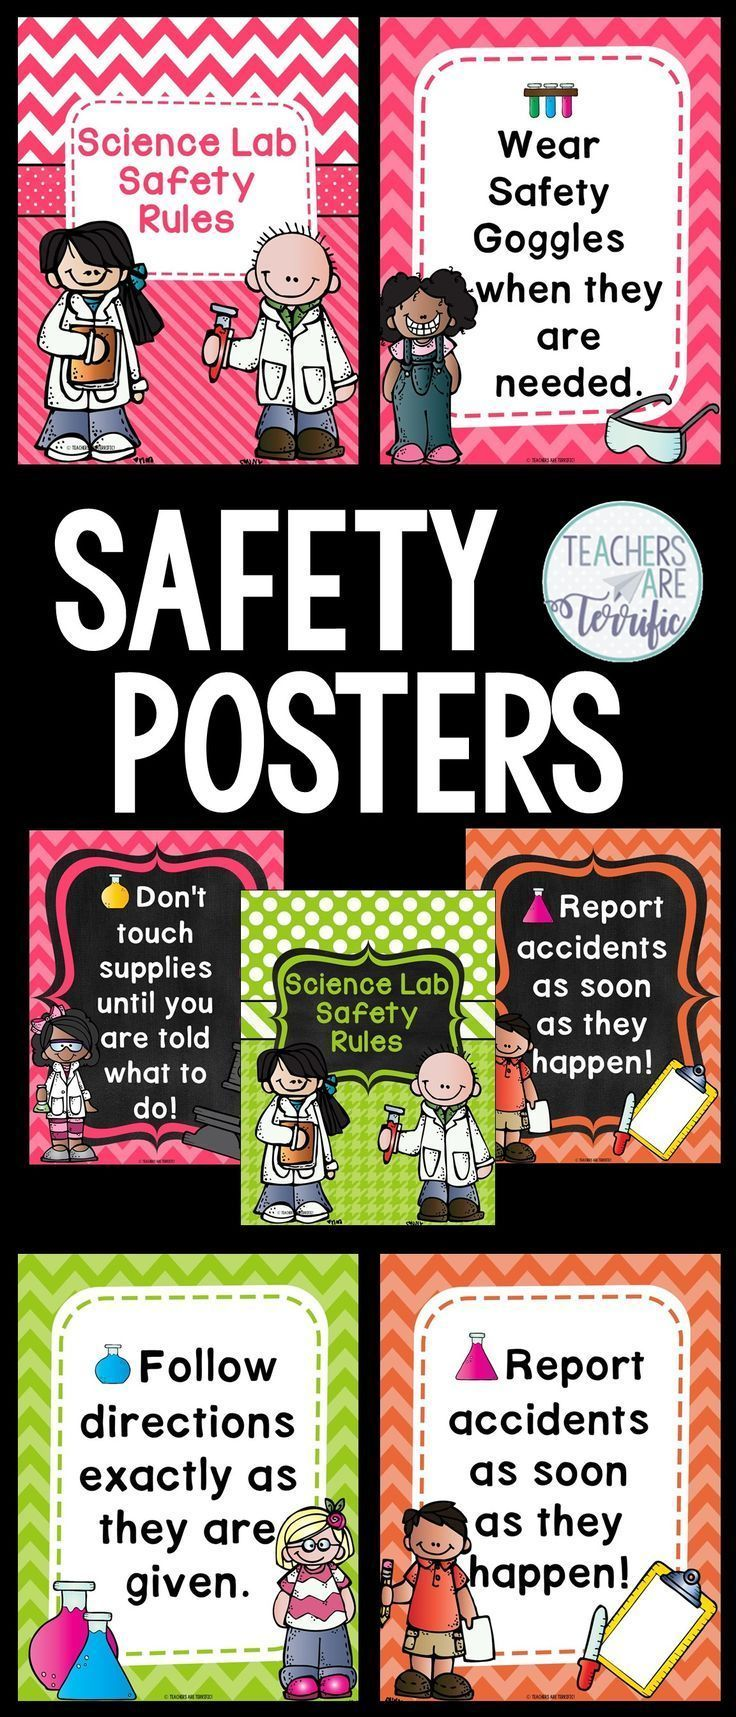 Science Safety Rules Posters in Pink, Orange and Lime